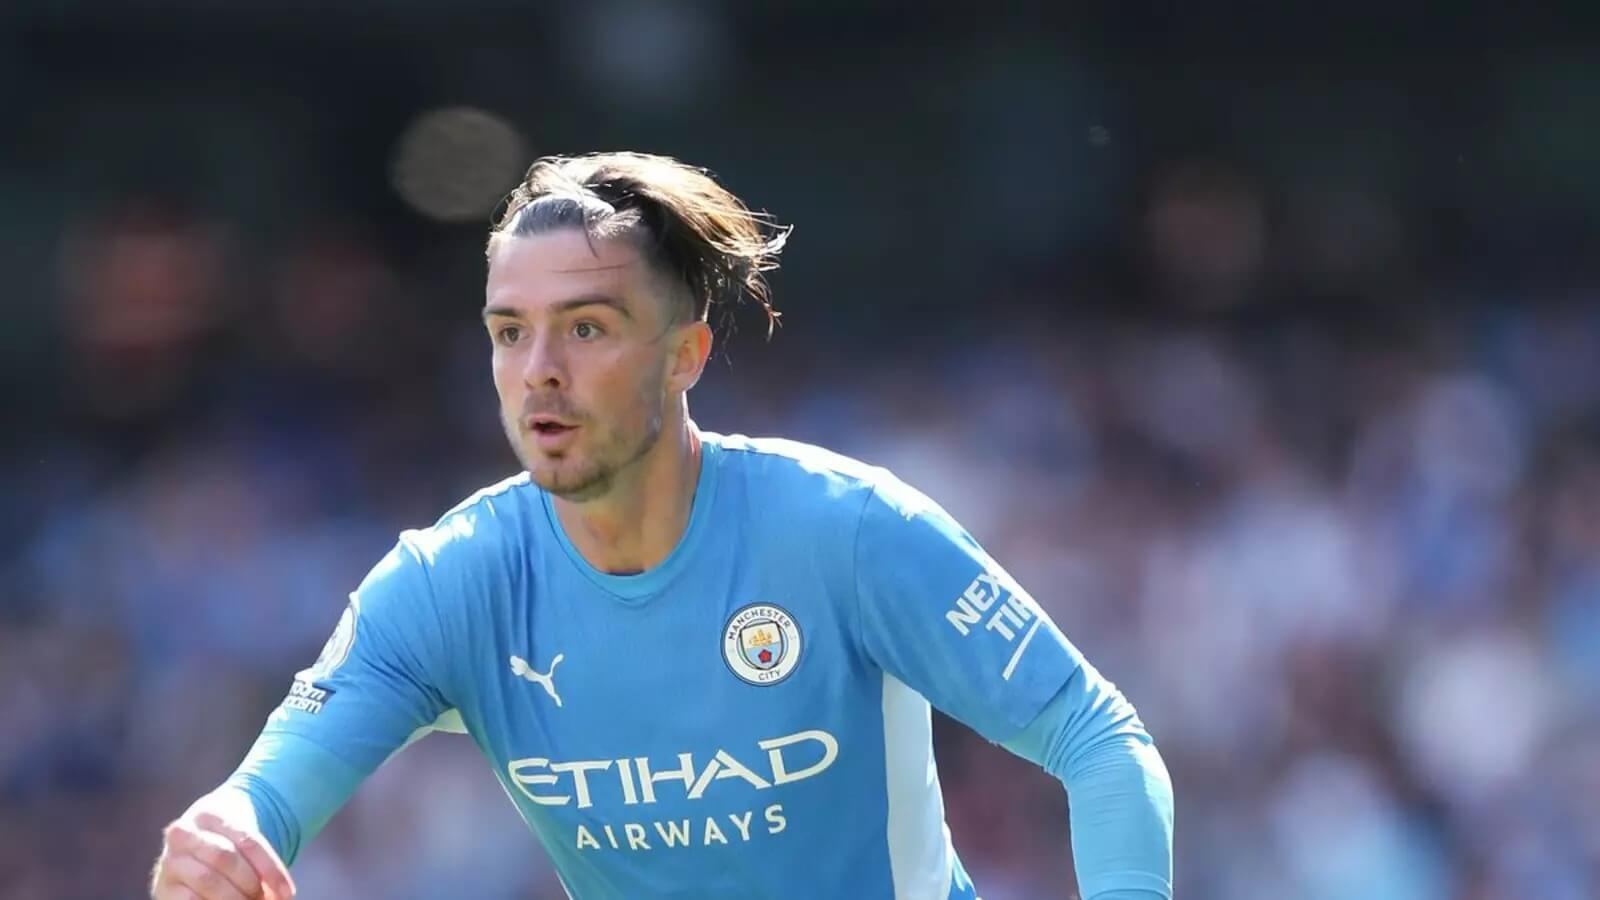 Paul Dickov believes Jack Grealish has a great start at Man City